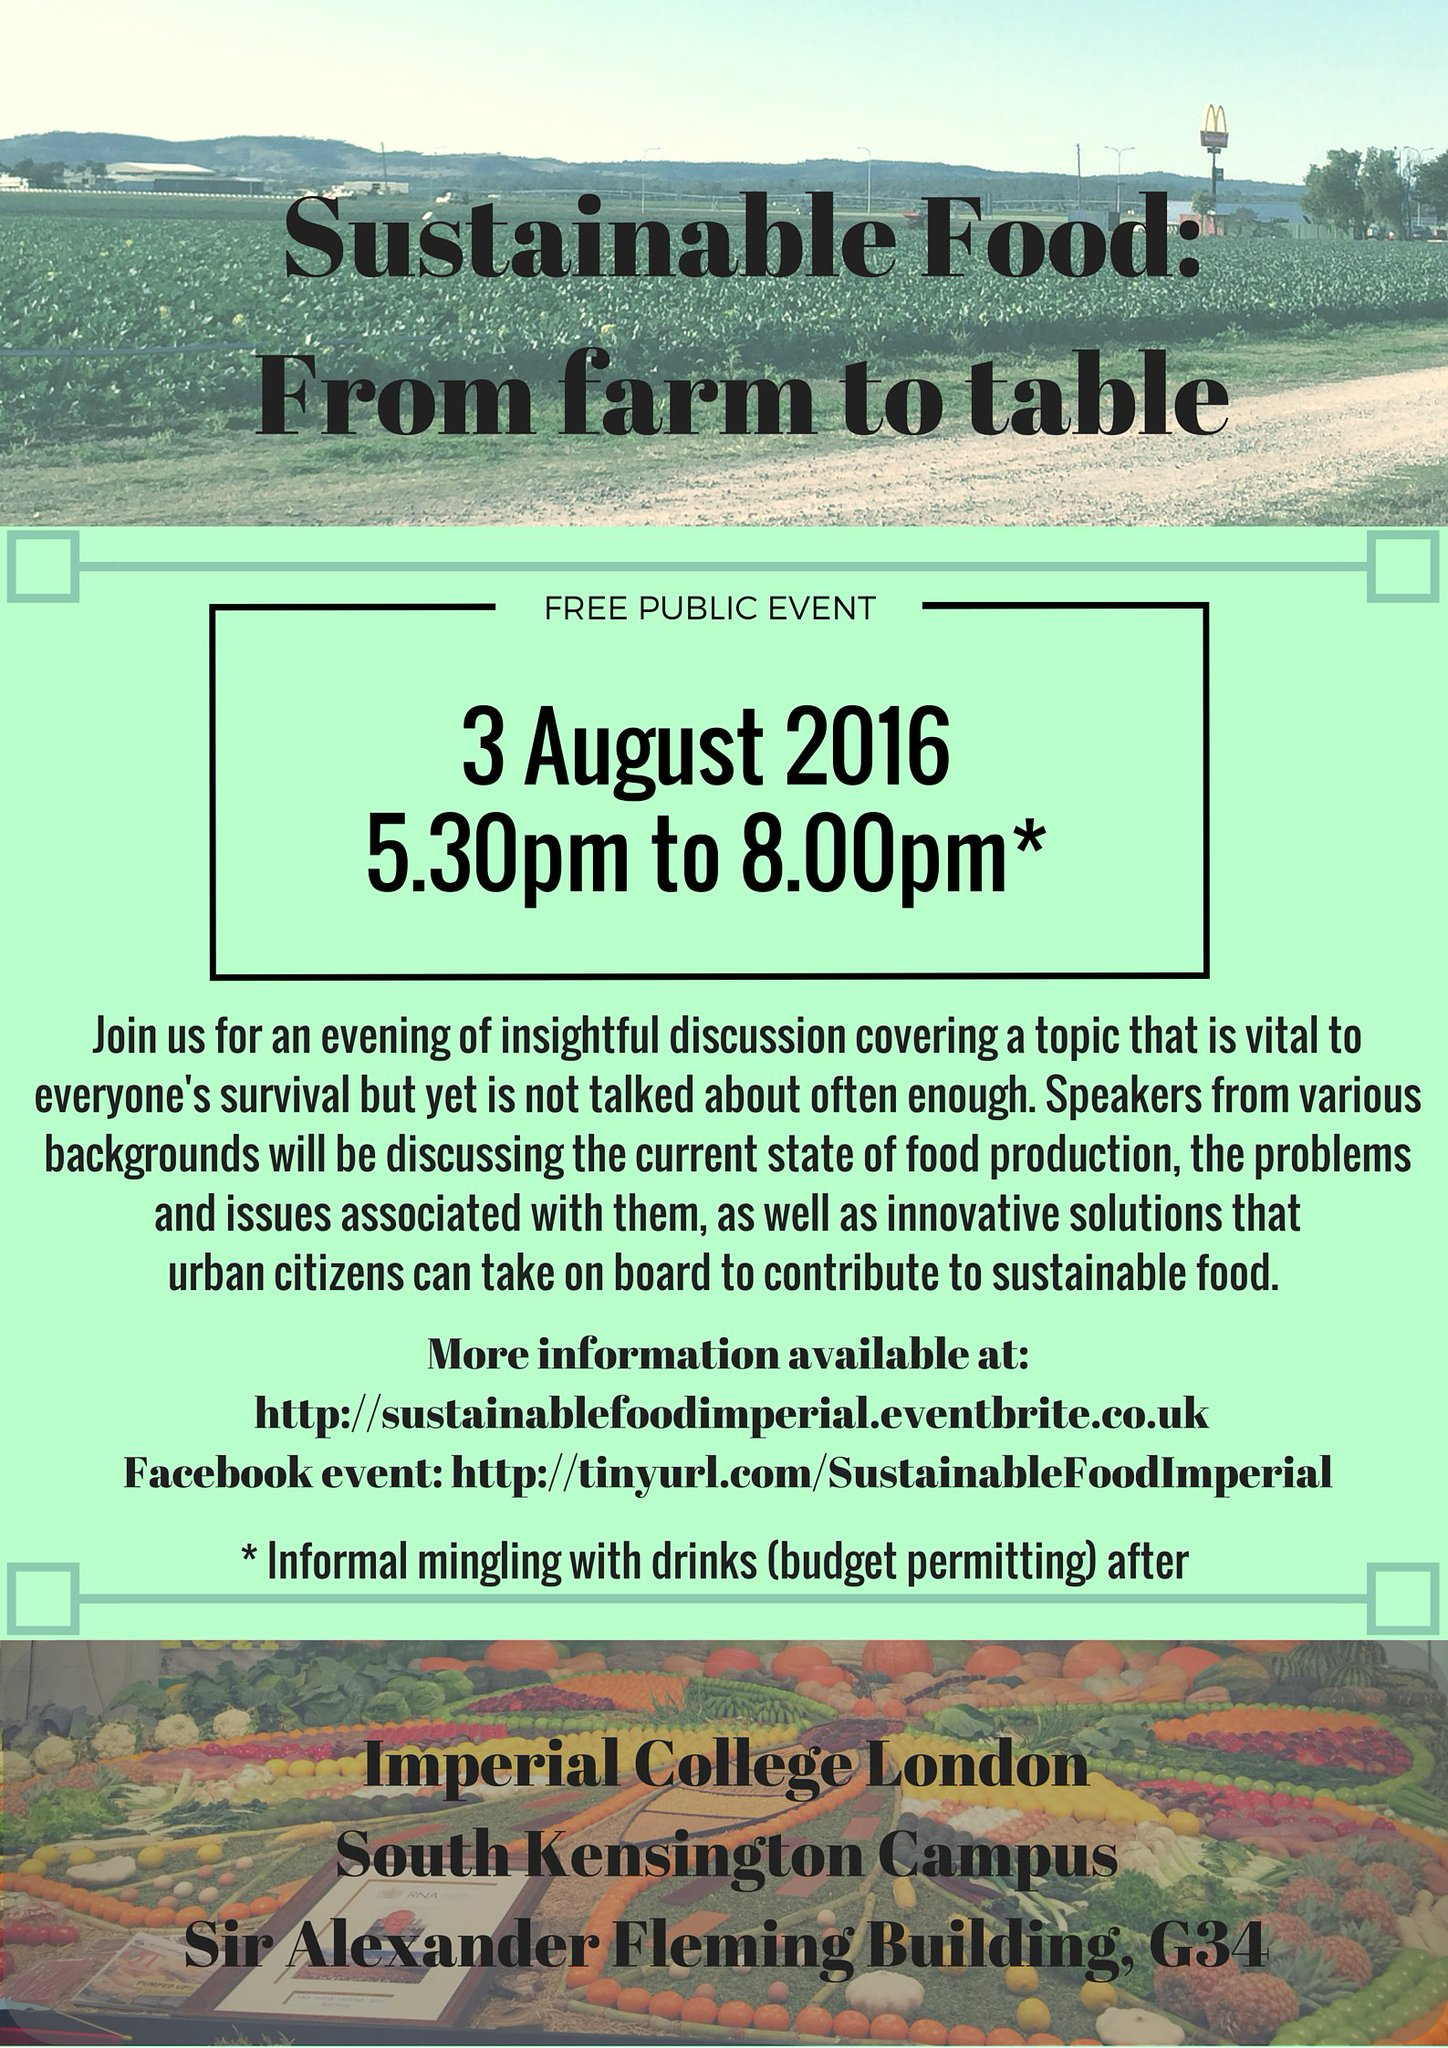 Interested in #sustainable food? Join us @imperialcollege on 3 Aug for a public symposium https://t.co/evJhYF3Qle https://t.co/C0sBYbue9Z